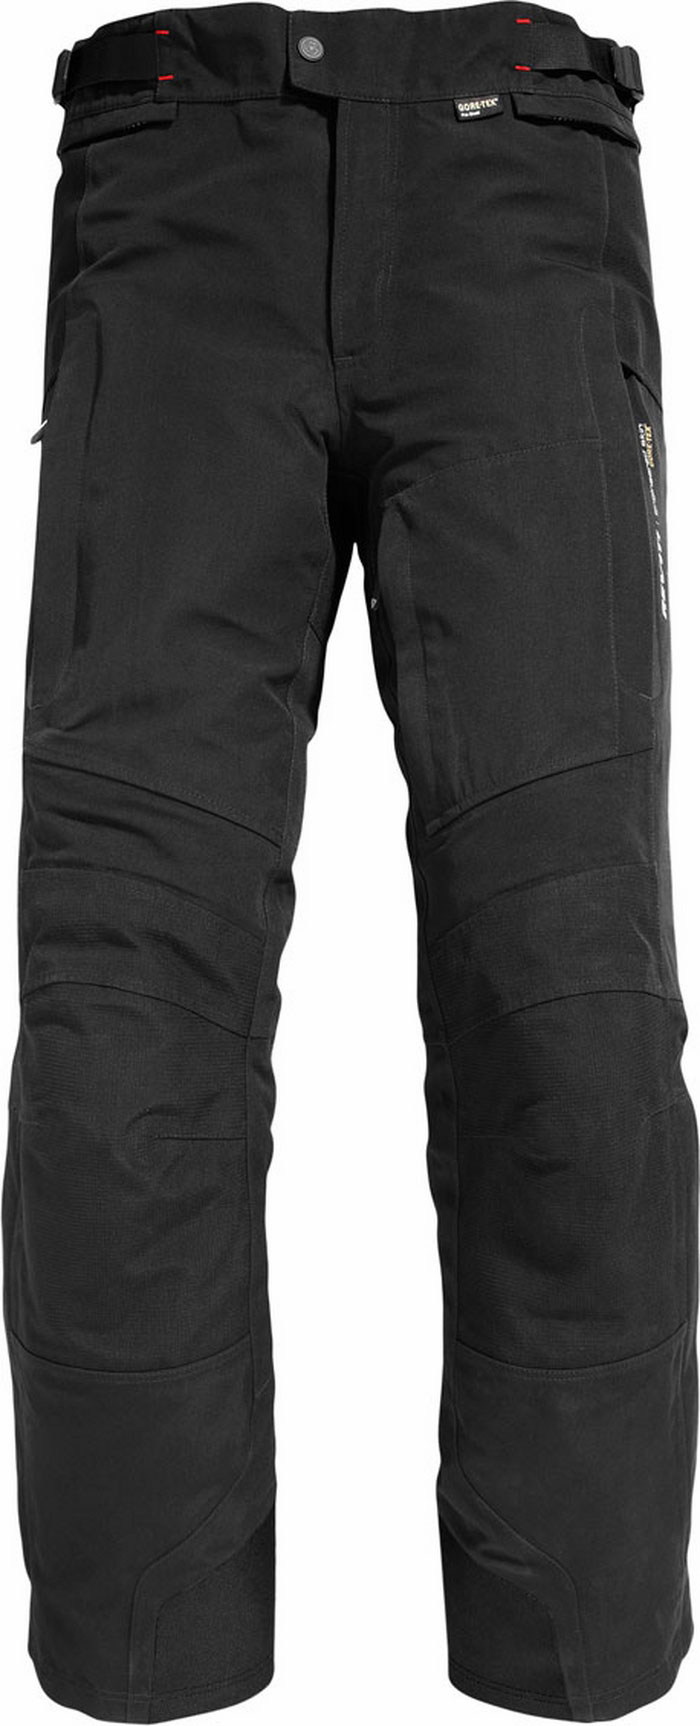 Pantaloni moto Rev'it Everest GTX - Accorciato